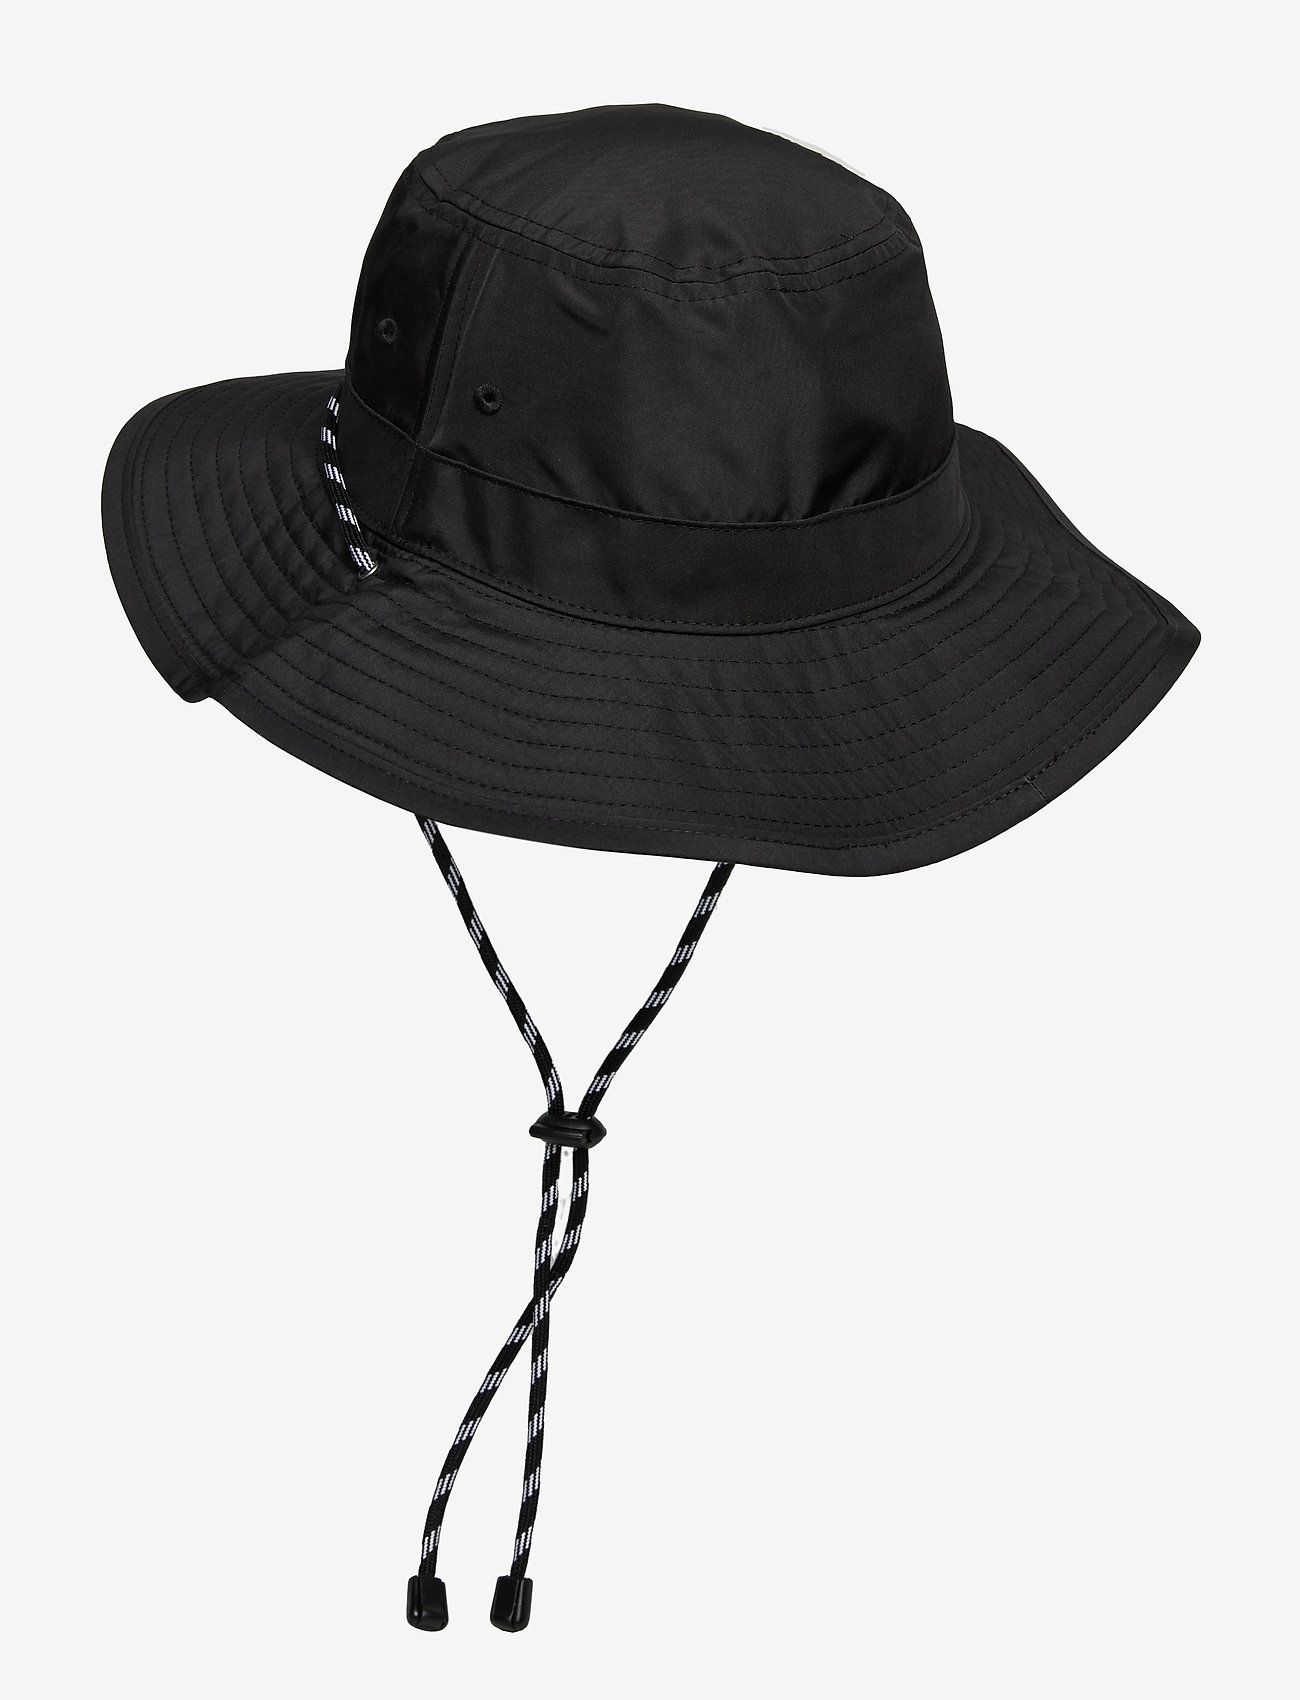 Levi's Footwear & Acc - RIVER HAT - OV - kapelusze - regular black - 1